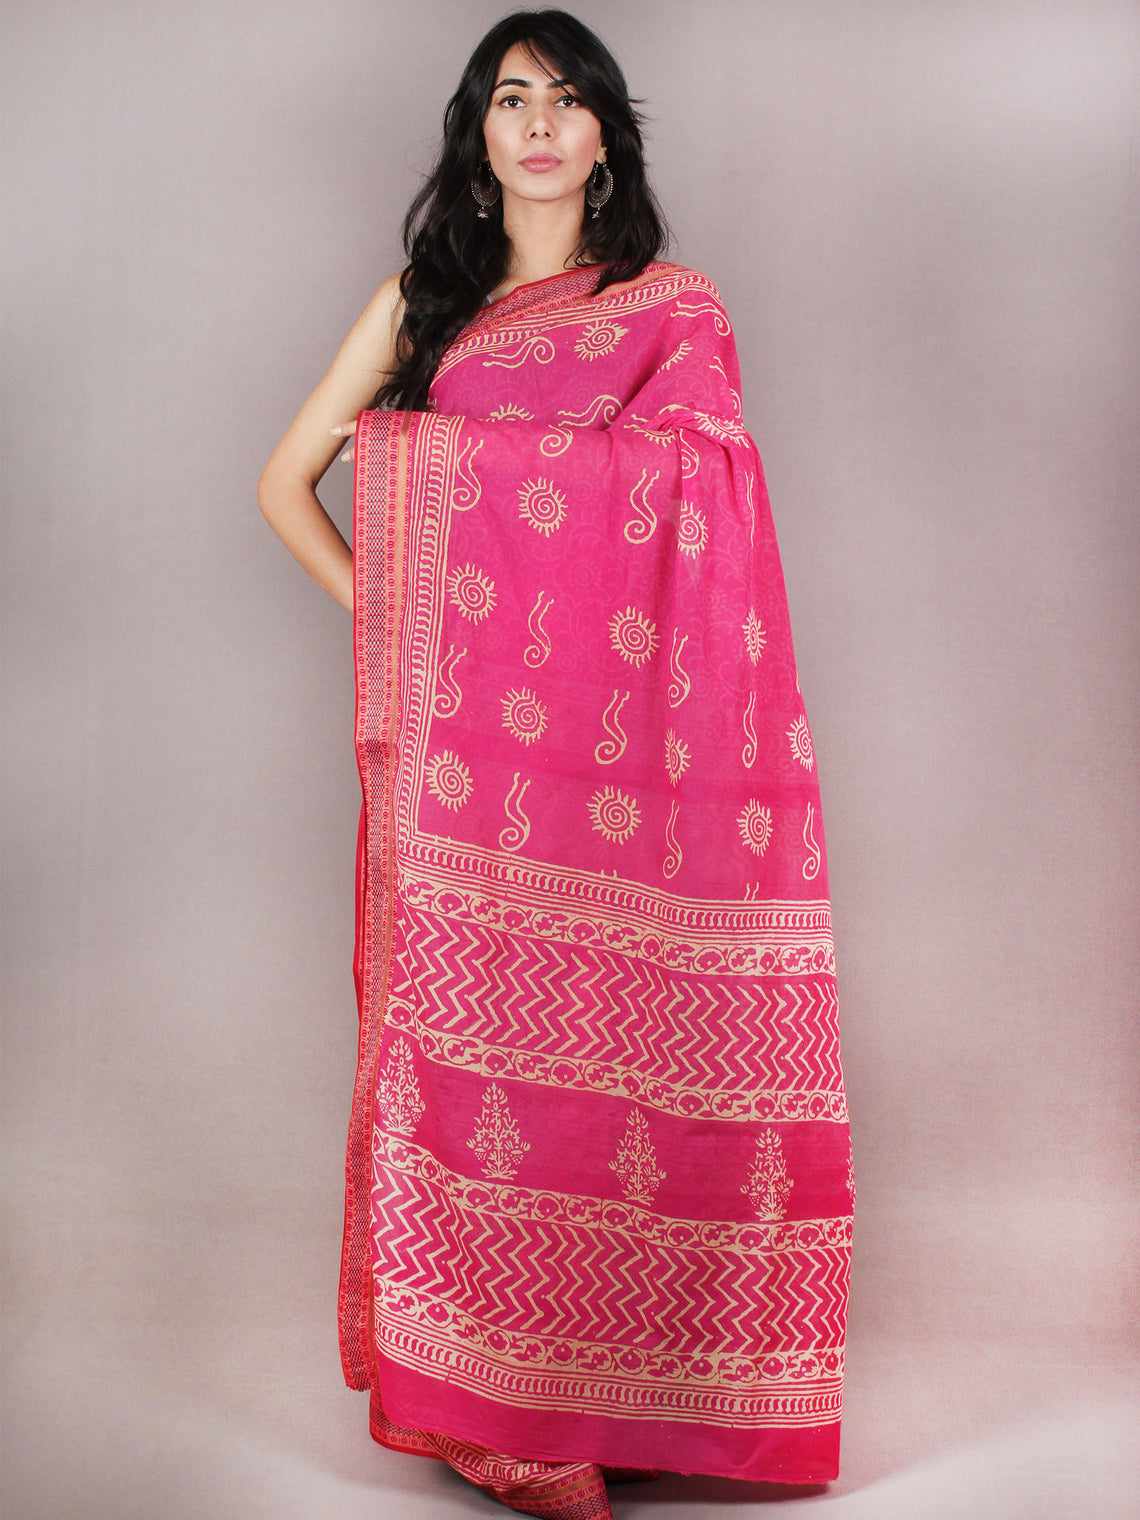 Pink Beige Hand Block Printed in Natural Colors Cotton Mul Saree With Resham Border - S03170705